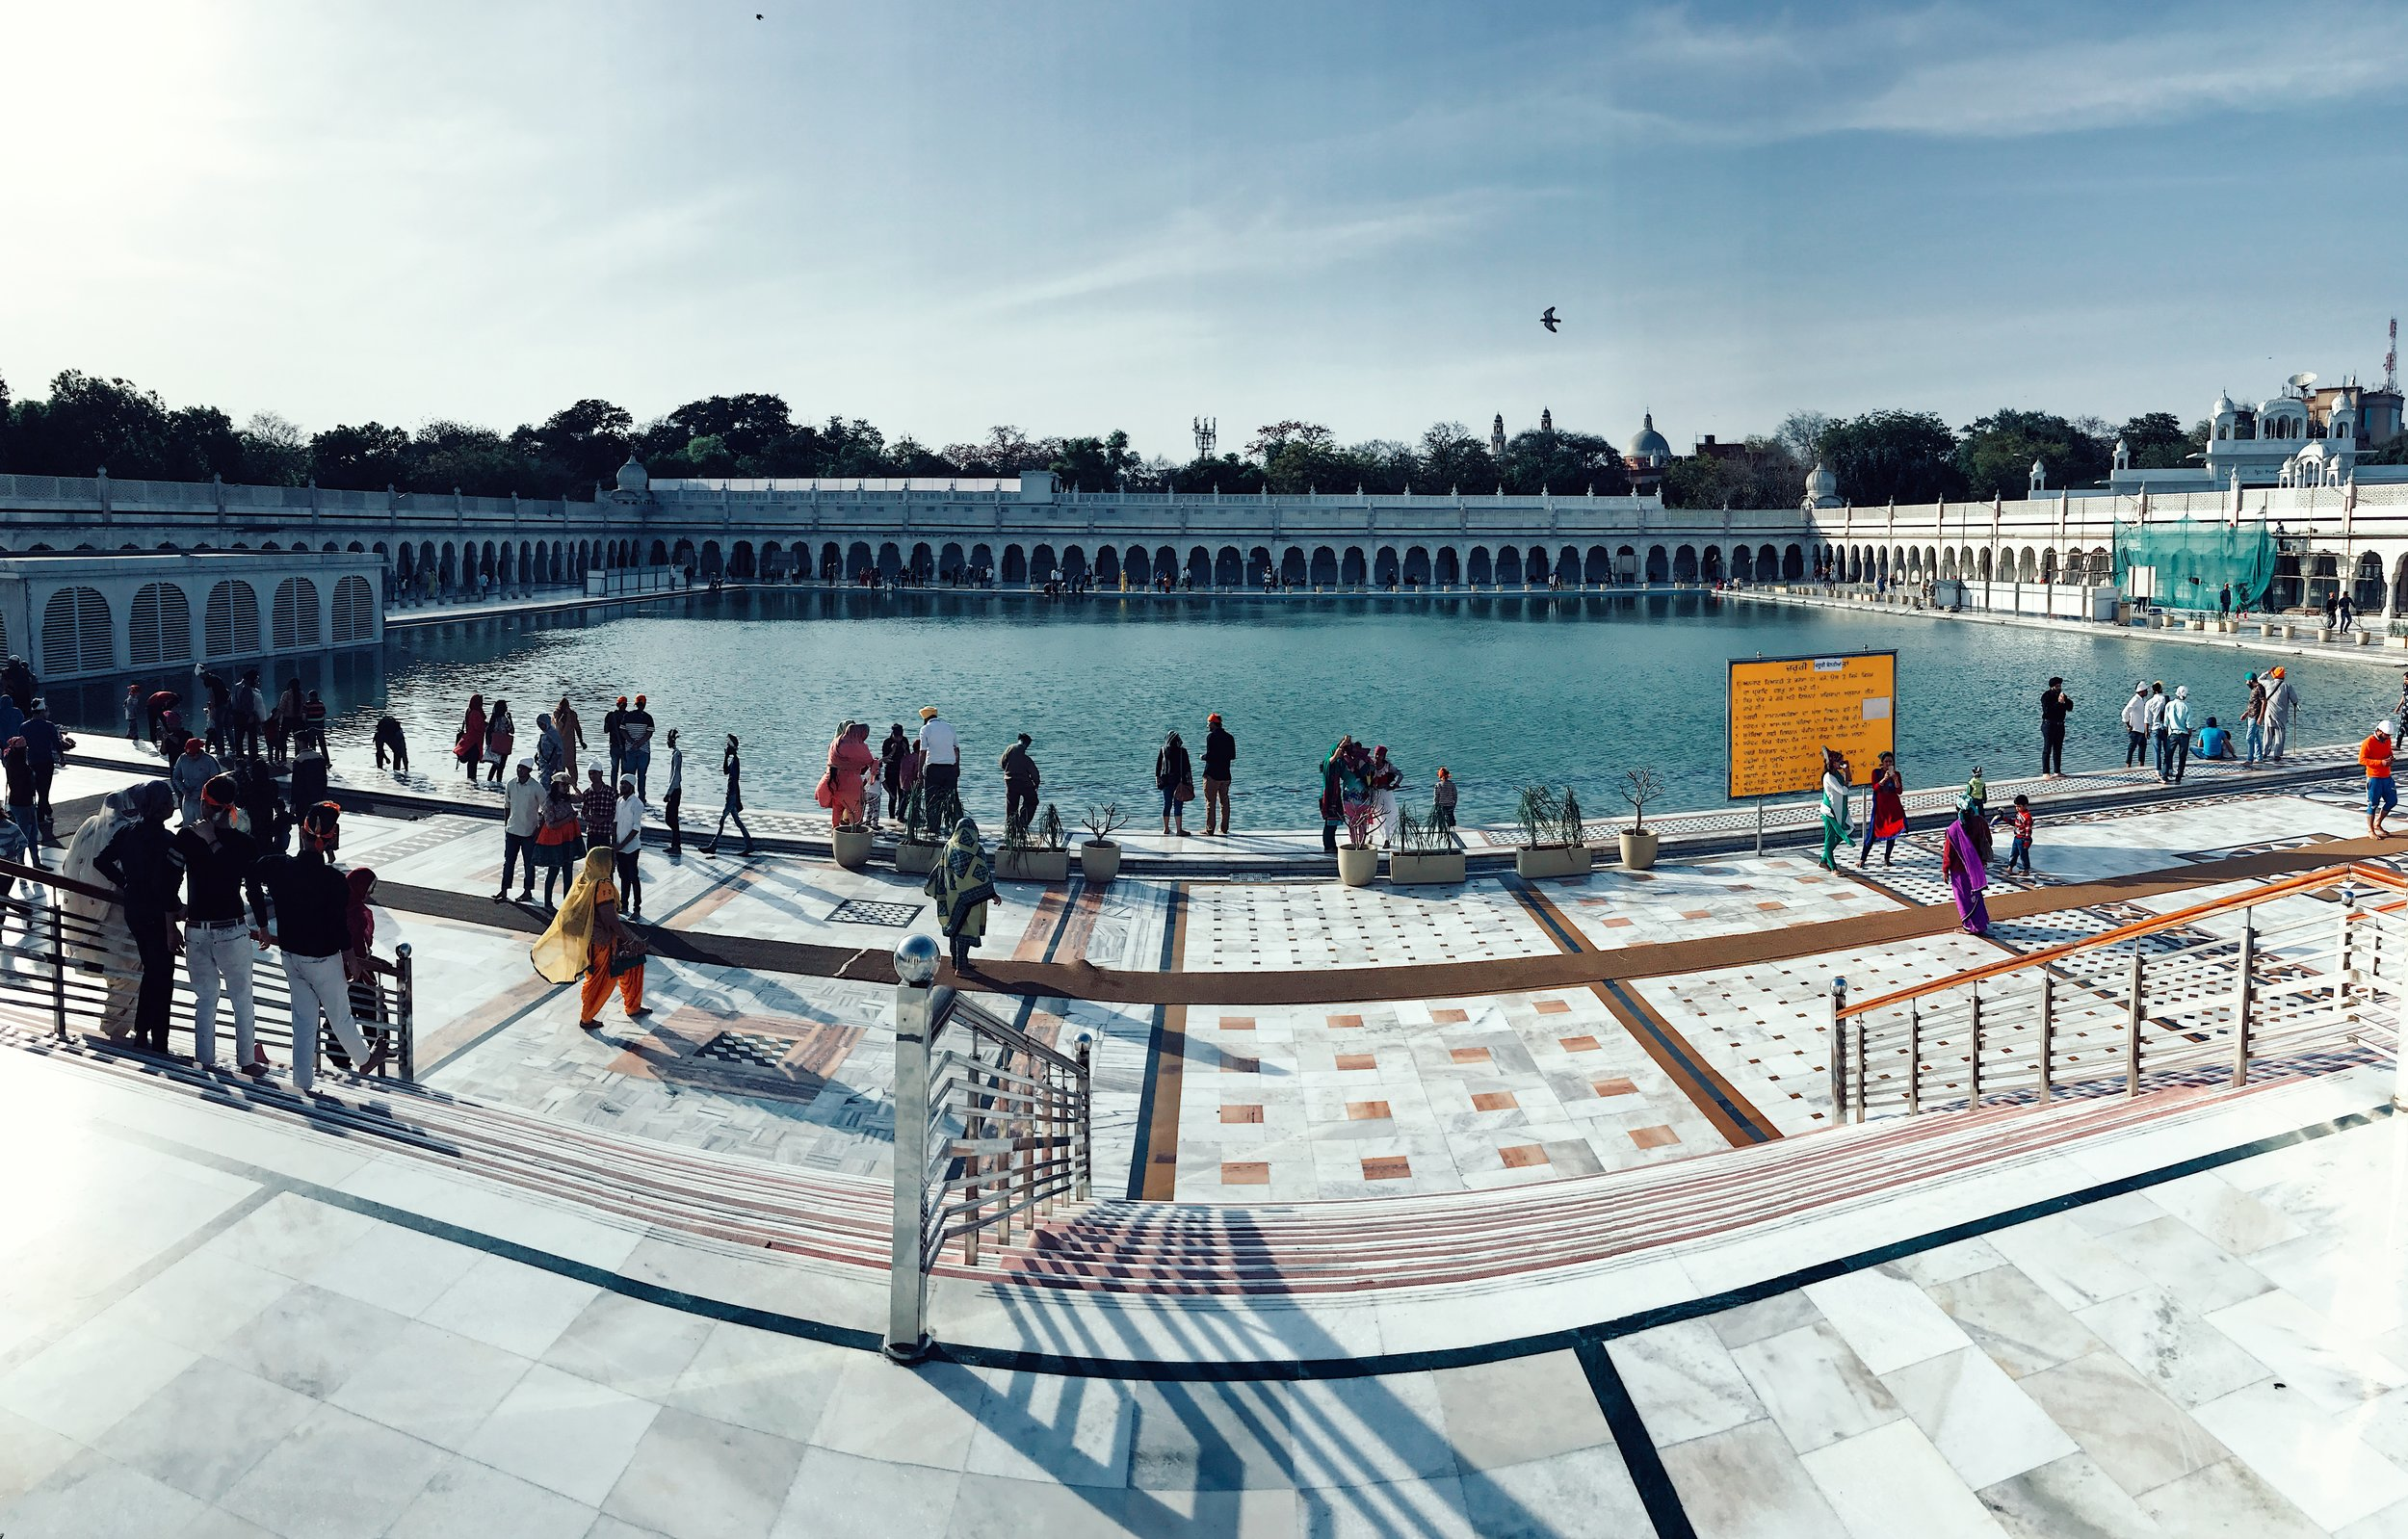 Gurudwara Bangla Sahib - Sikh temple in Delhi